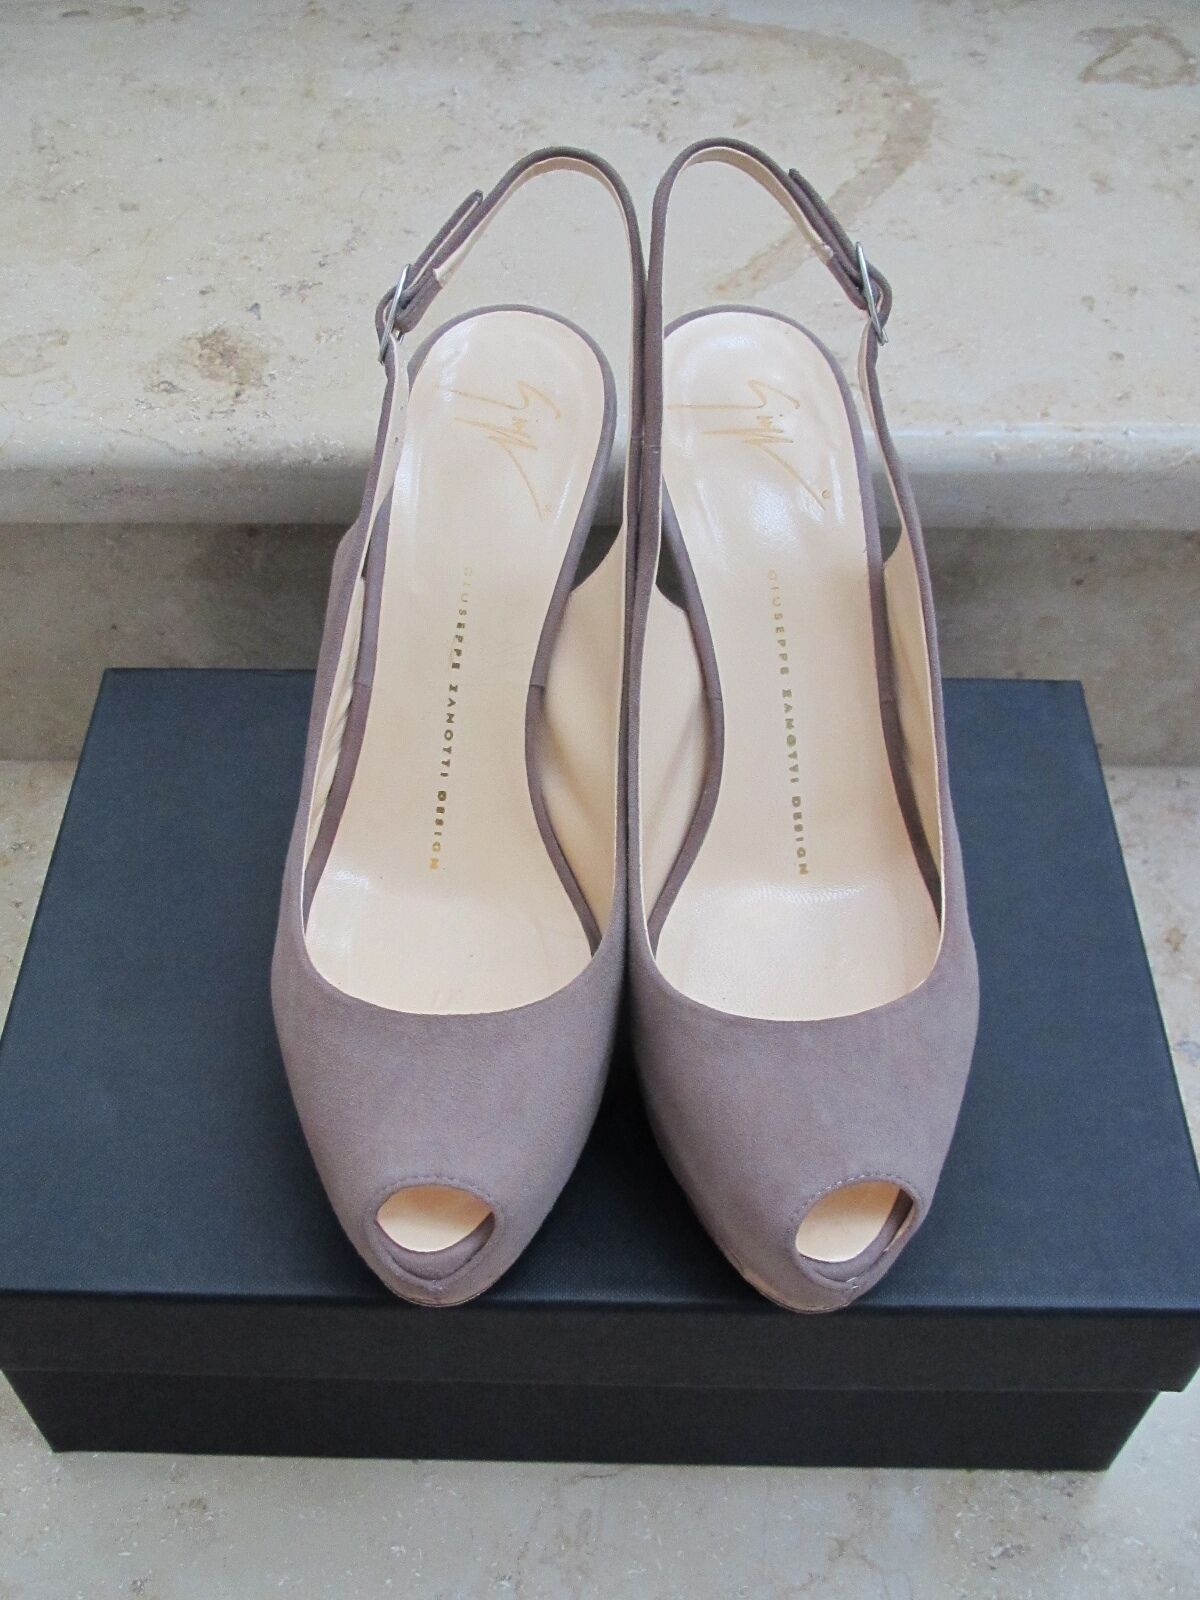 100% Authentic Toe GIUSEPPE ZANOTTI DESIGN Sand Suede Peep Toe Authentic Pumps $619 37 873756